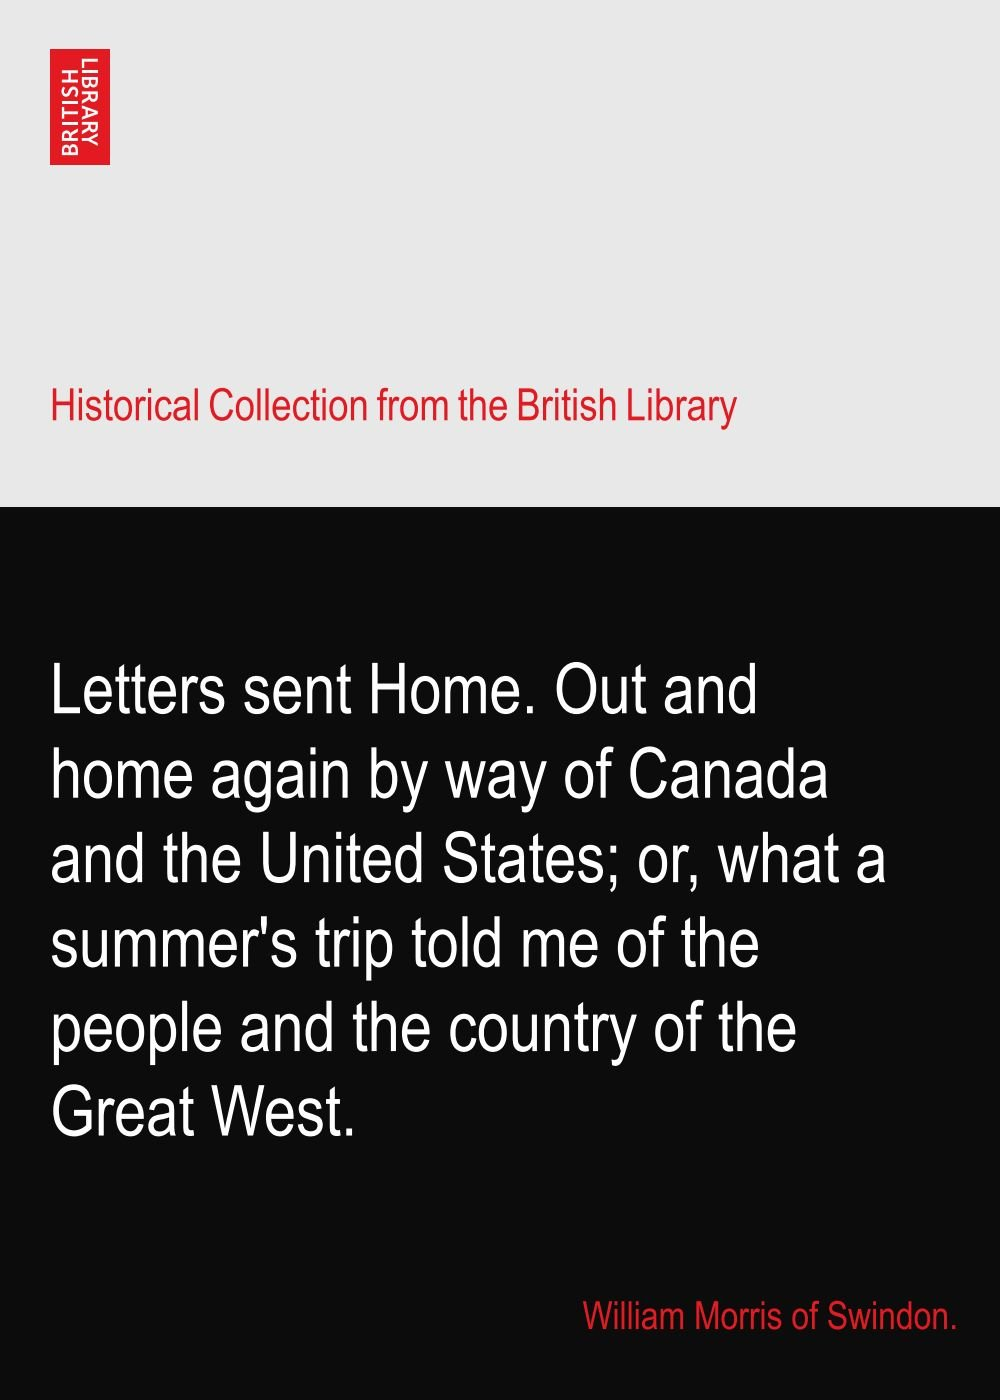 Letters sent Home. Out and home again by way of Canada and the United States; or, what a summer's trip told me of the people and the country of the Great West. pdf